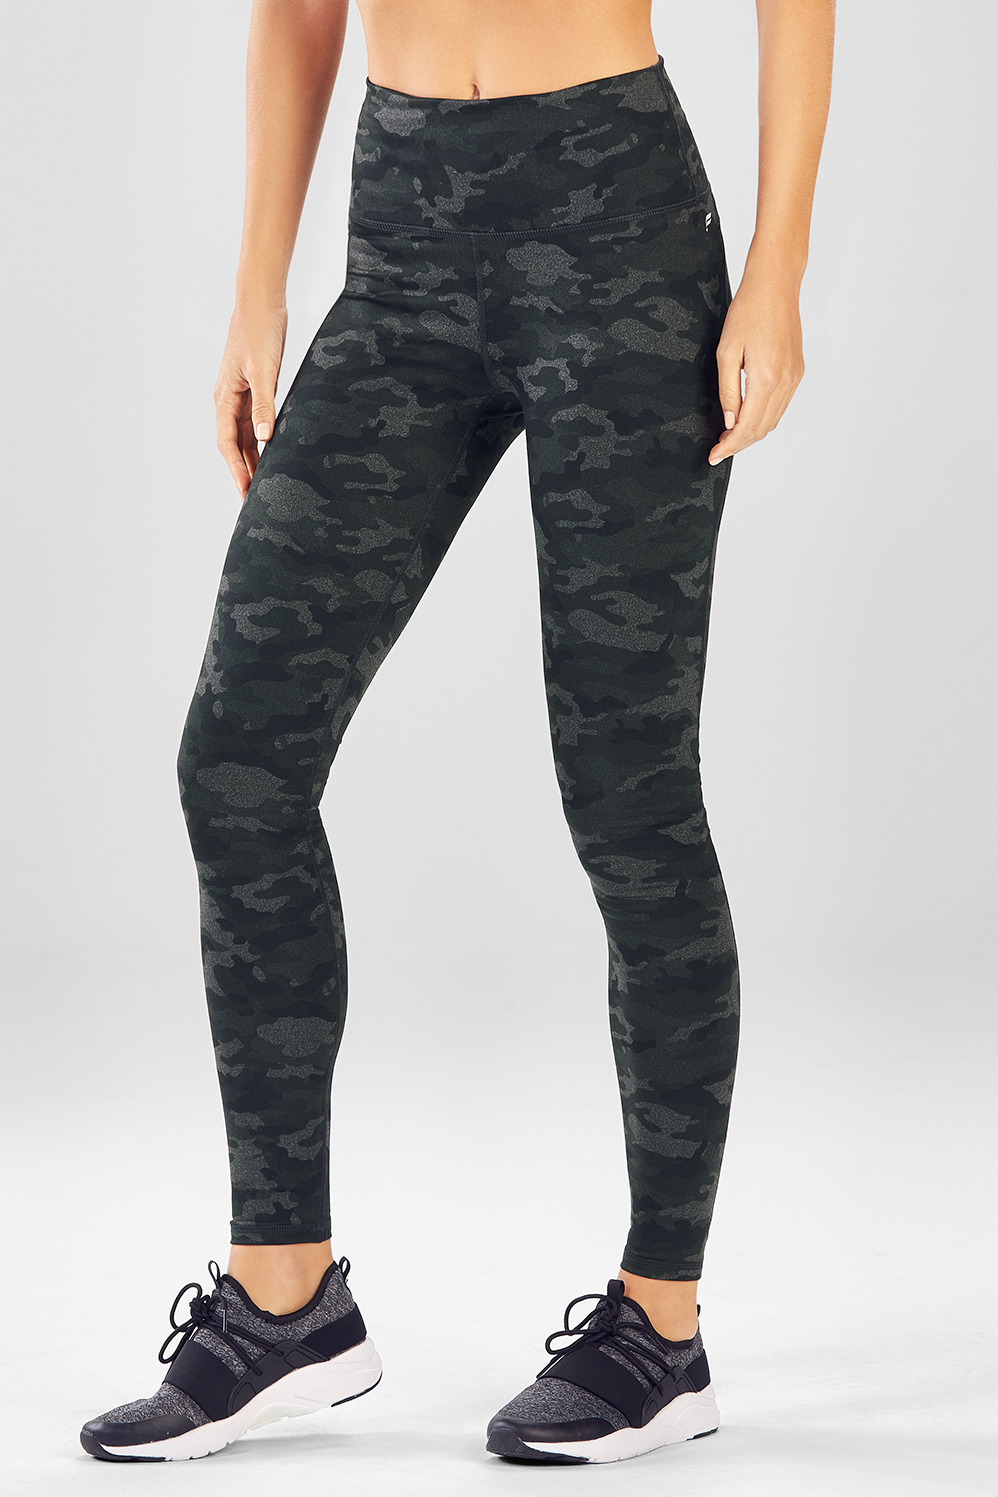 88fa2942c777a High-Waisted Printed Powerhold® Legging - Charcoal Camo